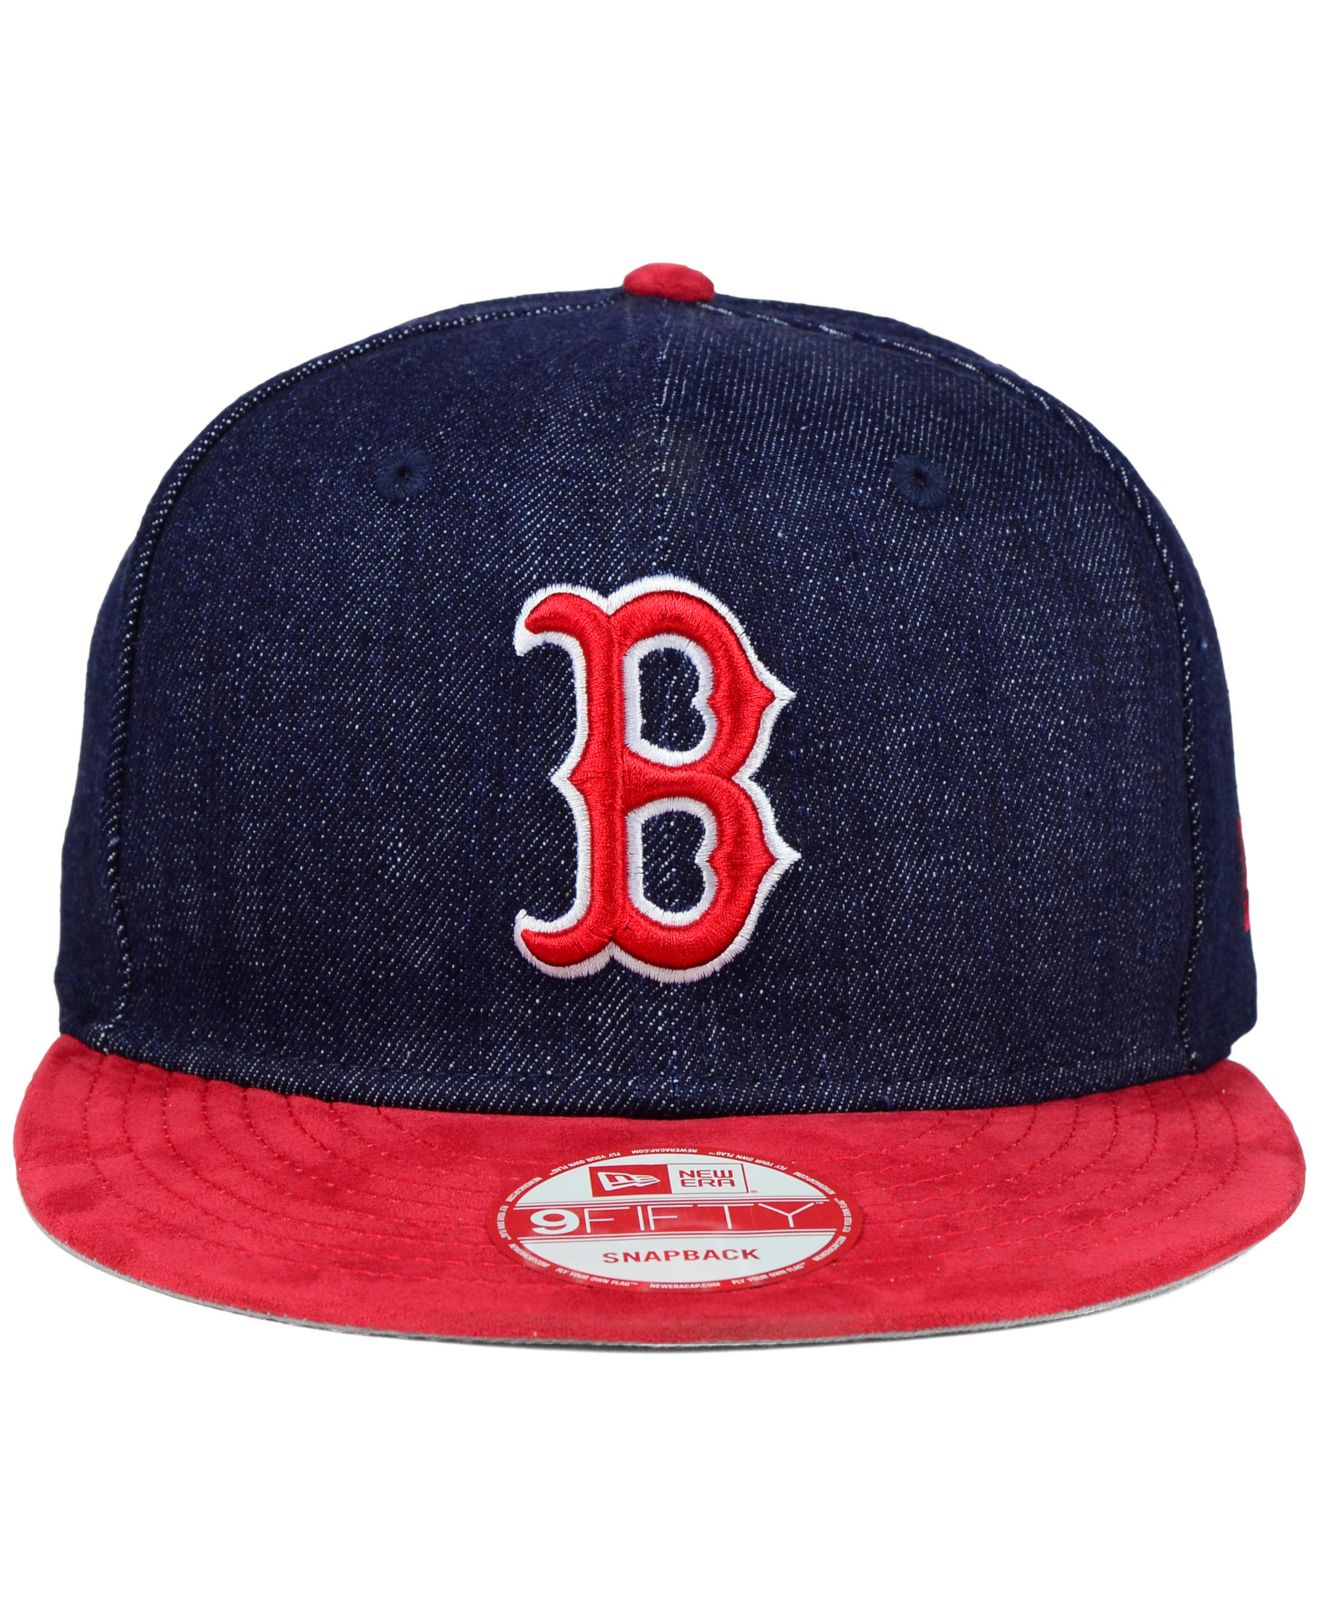 on sale c2519 ab6a5 ... discount lyst ktz boston red sox denim suede 9fifty snapback cap in blue  5daaa 807e9